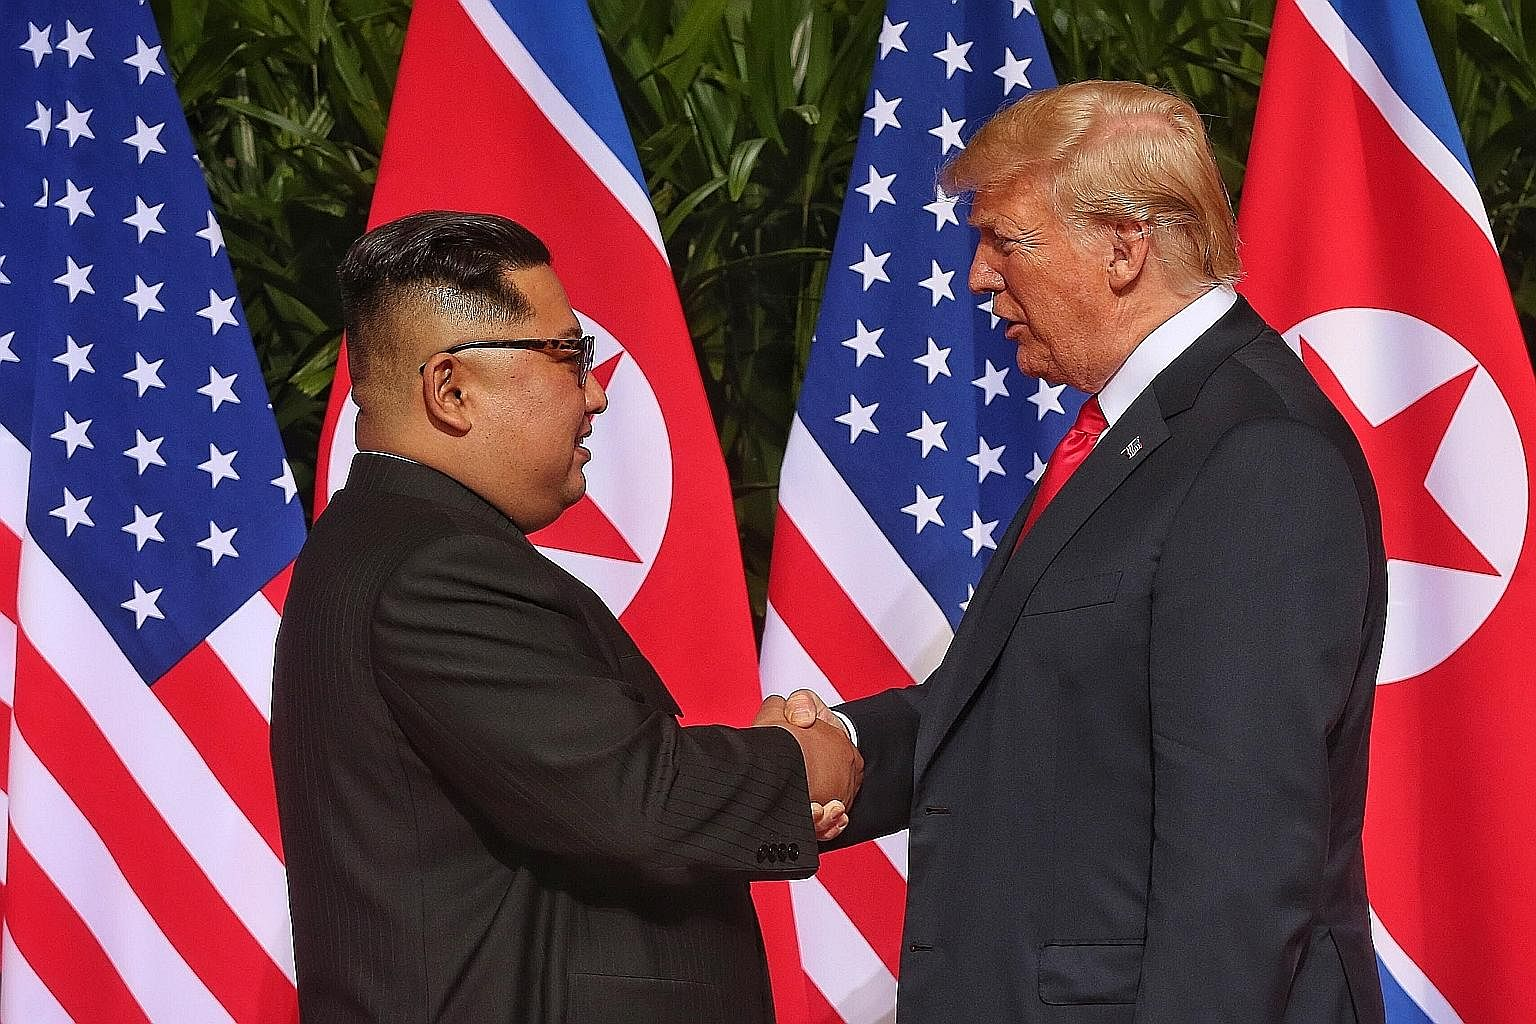 In June, global attention was on Singapore as it hosted the summit between US President Donald Trump and North Korean leader Kim Jong Un.